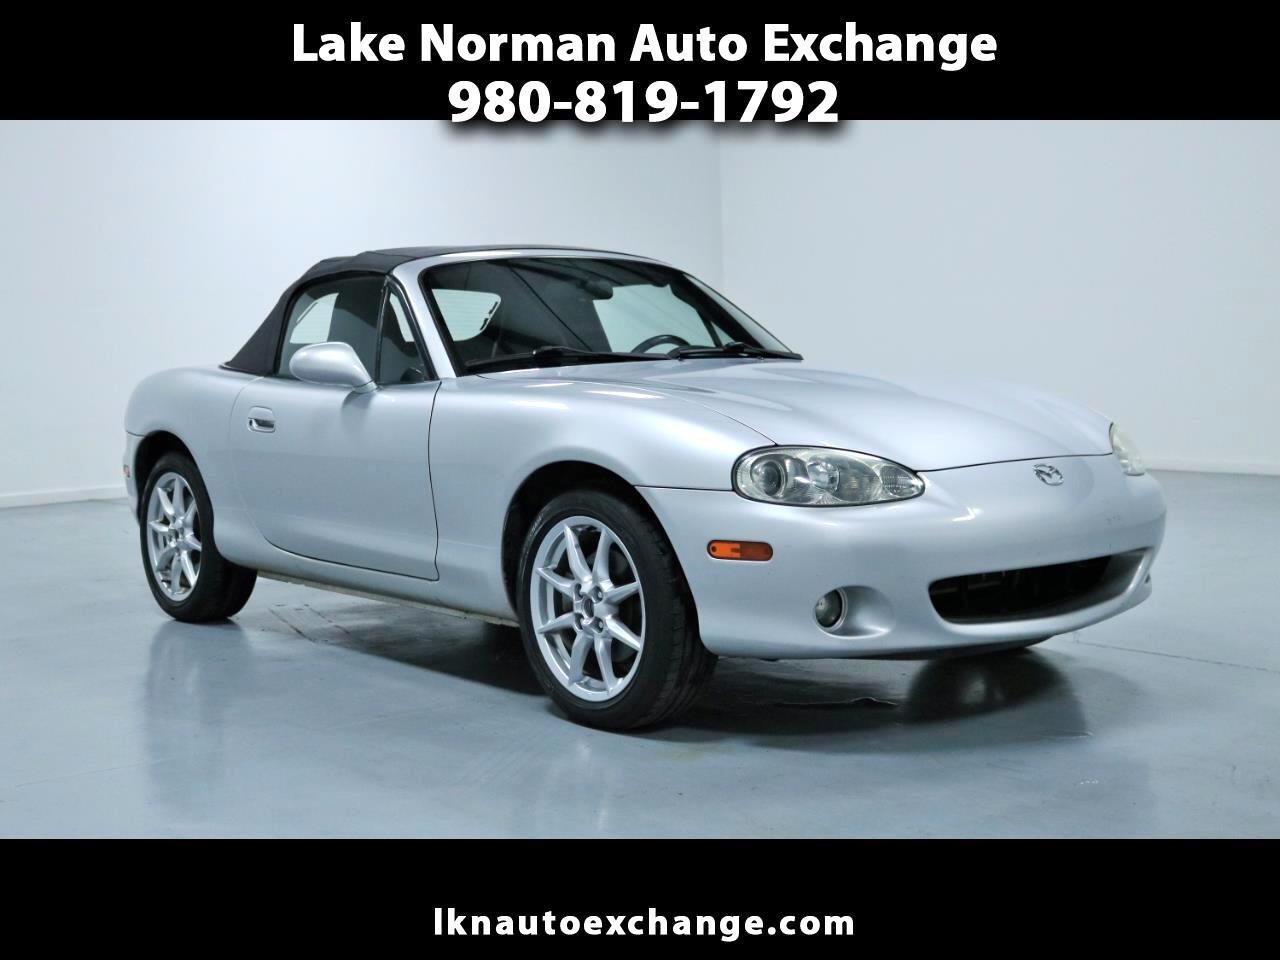 2004 Mazda MX-5 Miata 2dr Conv Cloth 5-Spd Manual